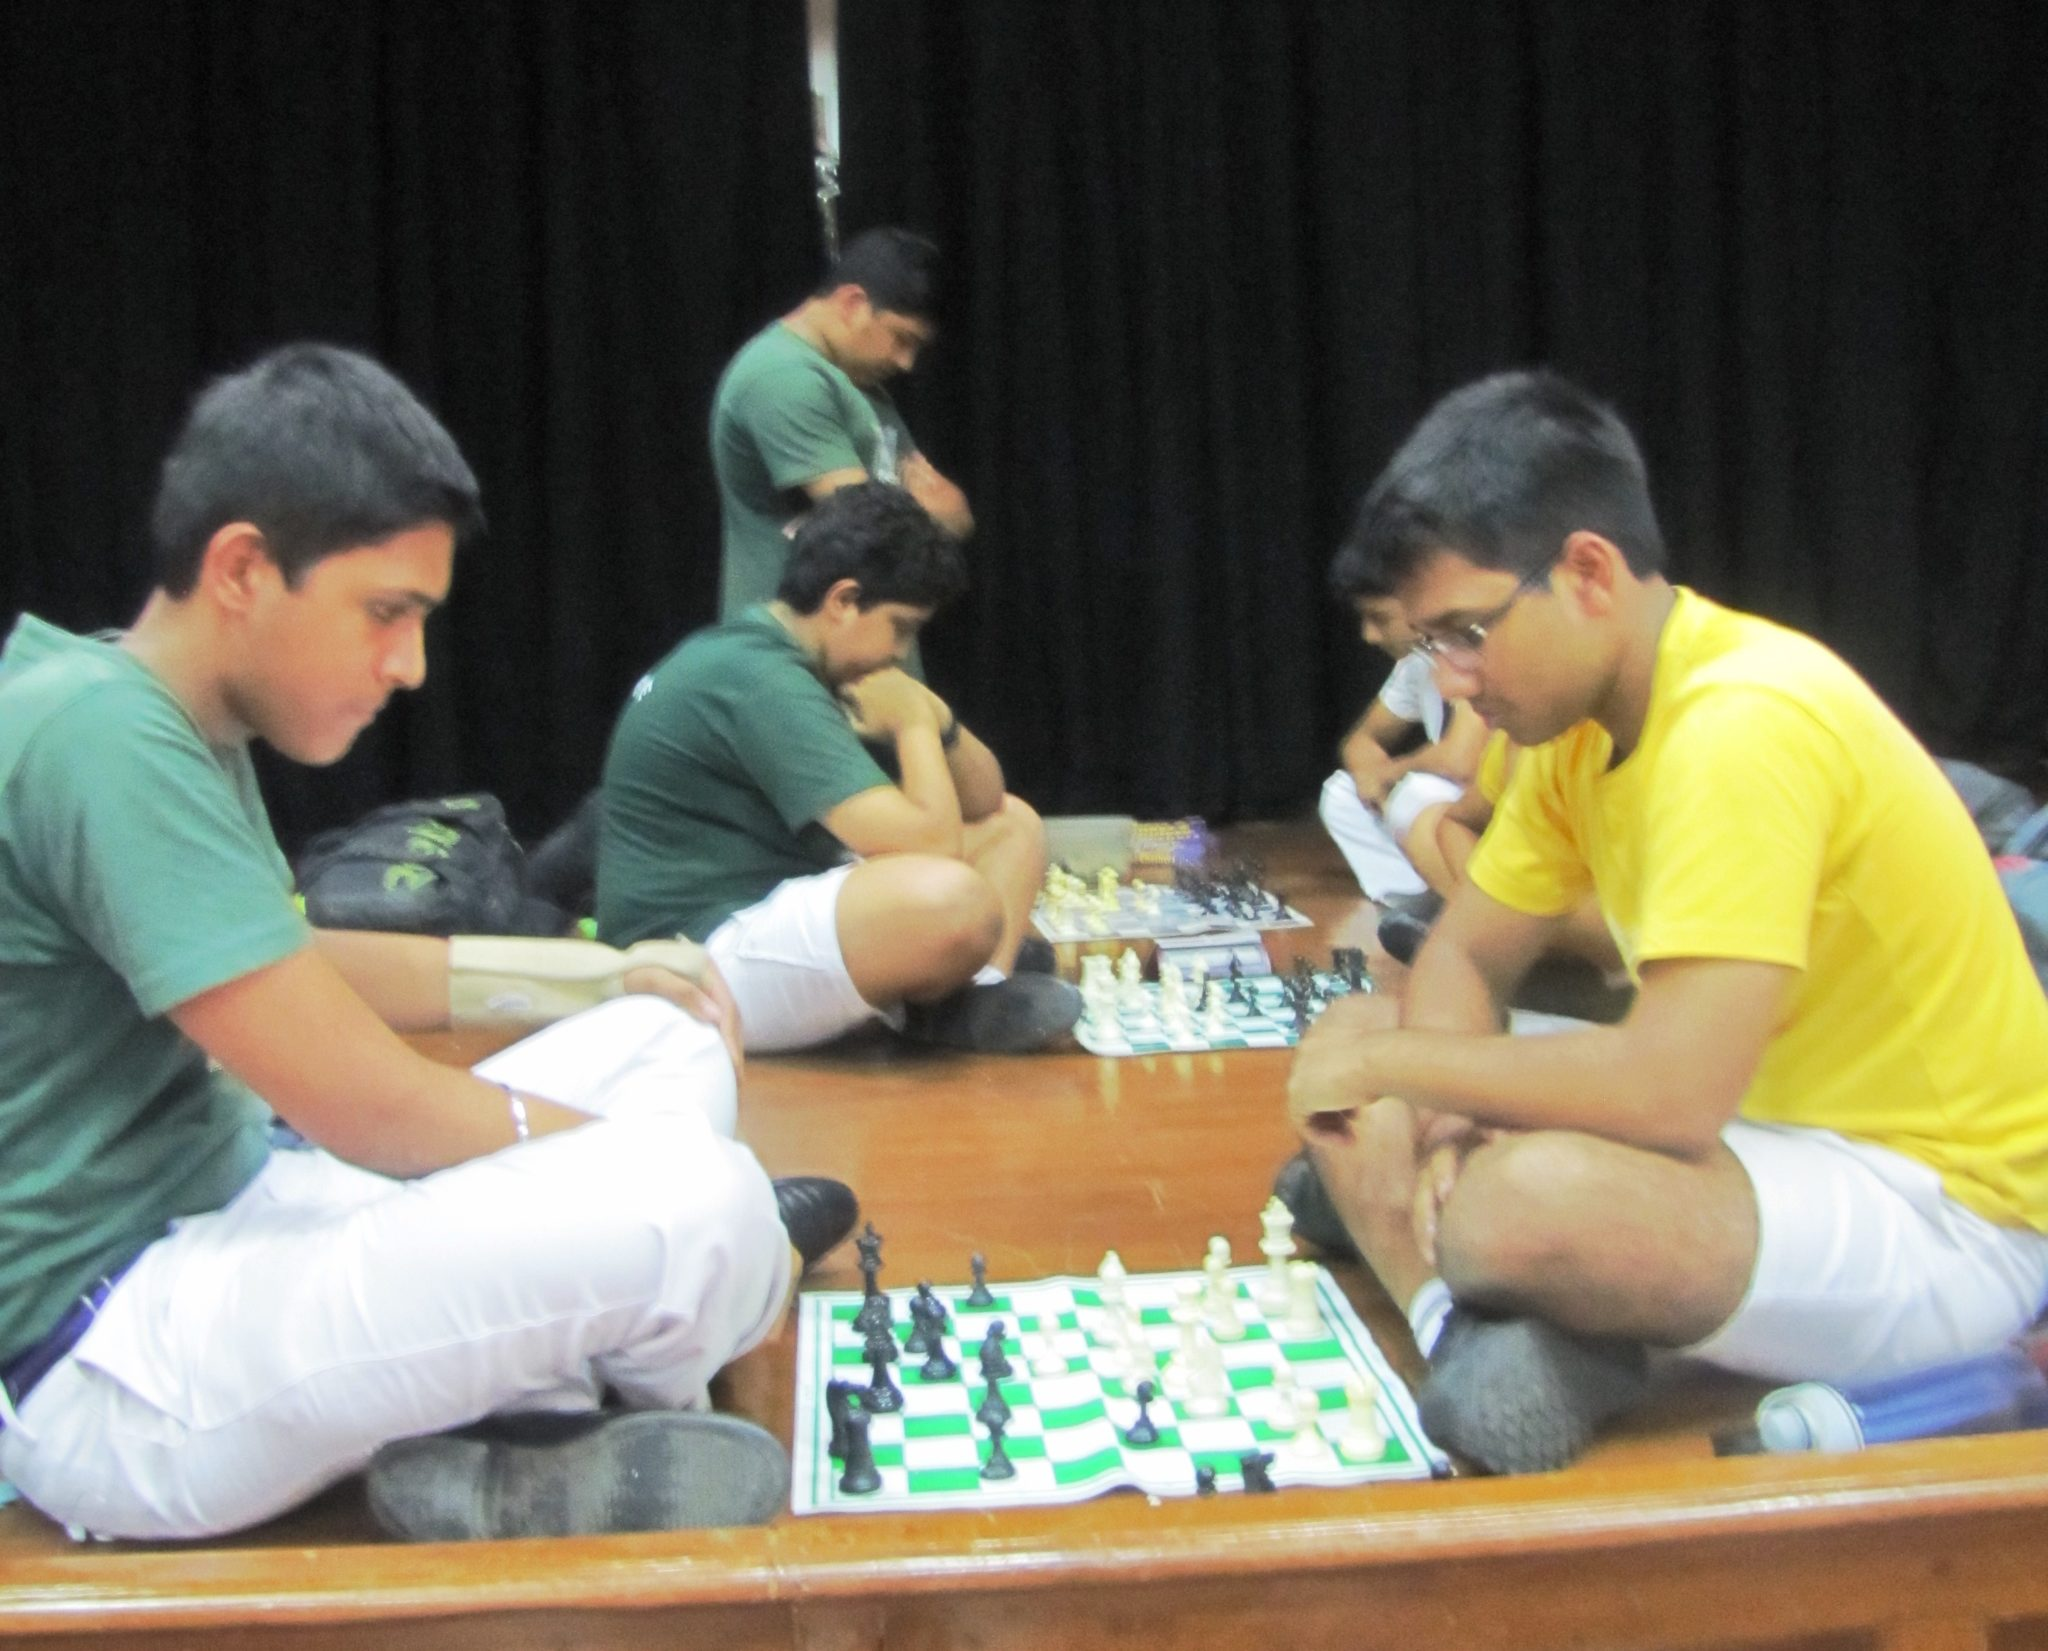 Inter House Chess